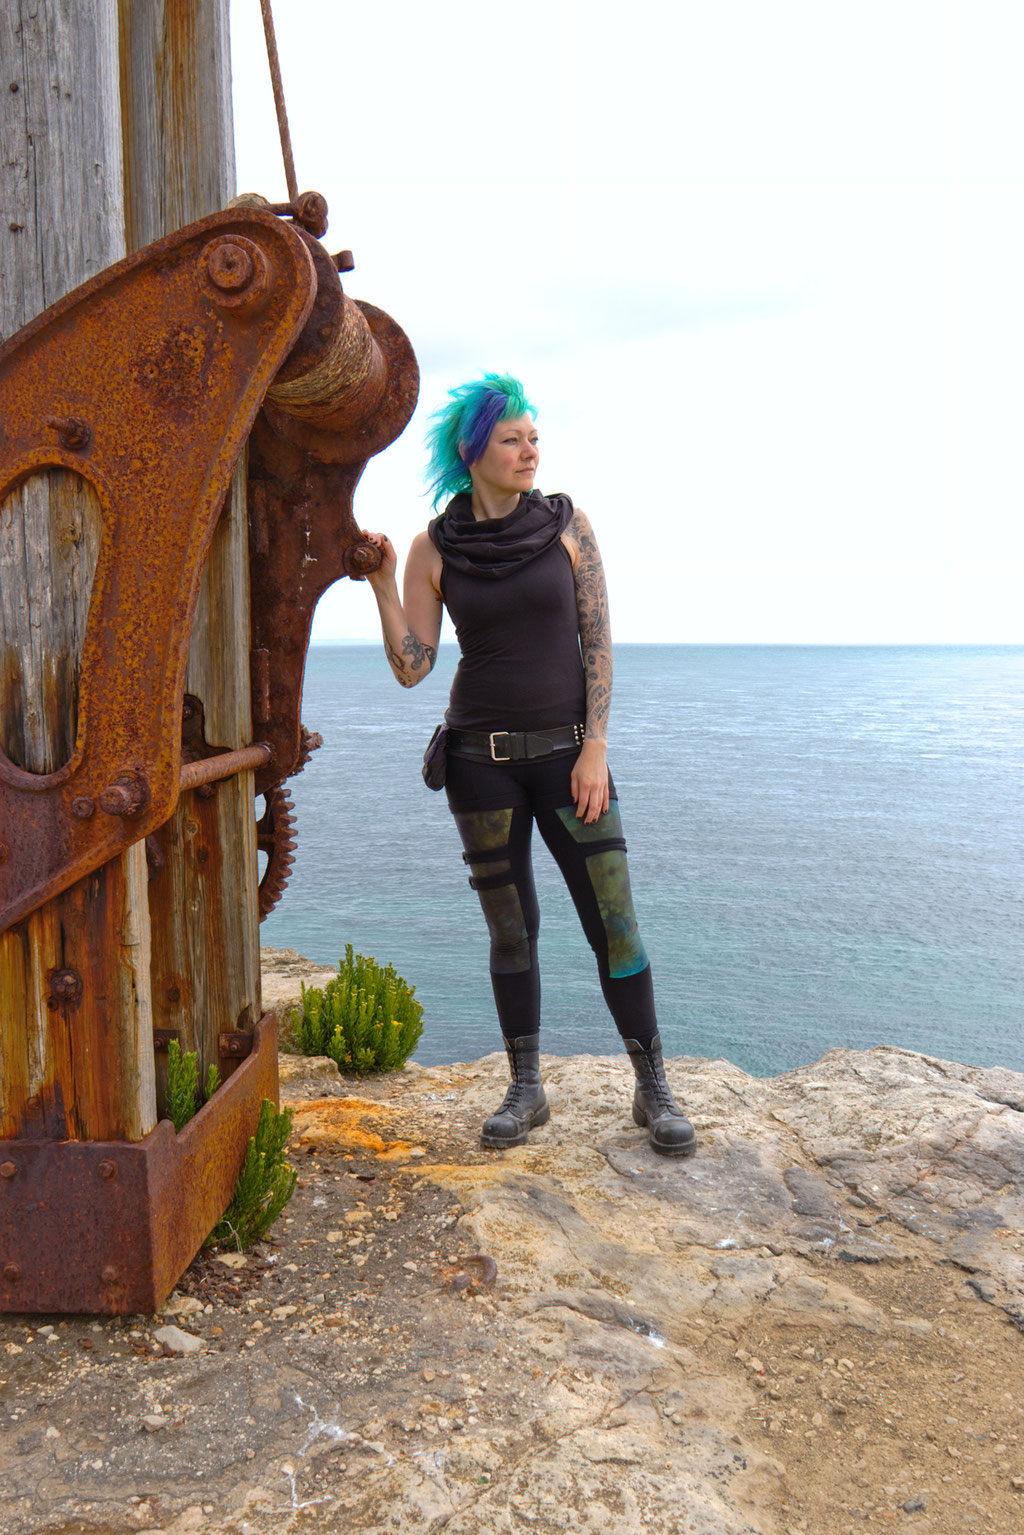 Seafront Quarry Outfit with Spirit of lunar and Crisiswear - blue sea and rusty crane - Zebraspider Eco Anti-Fashion